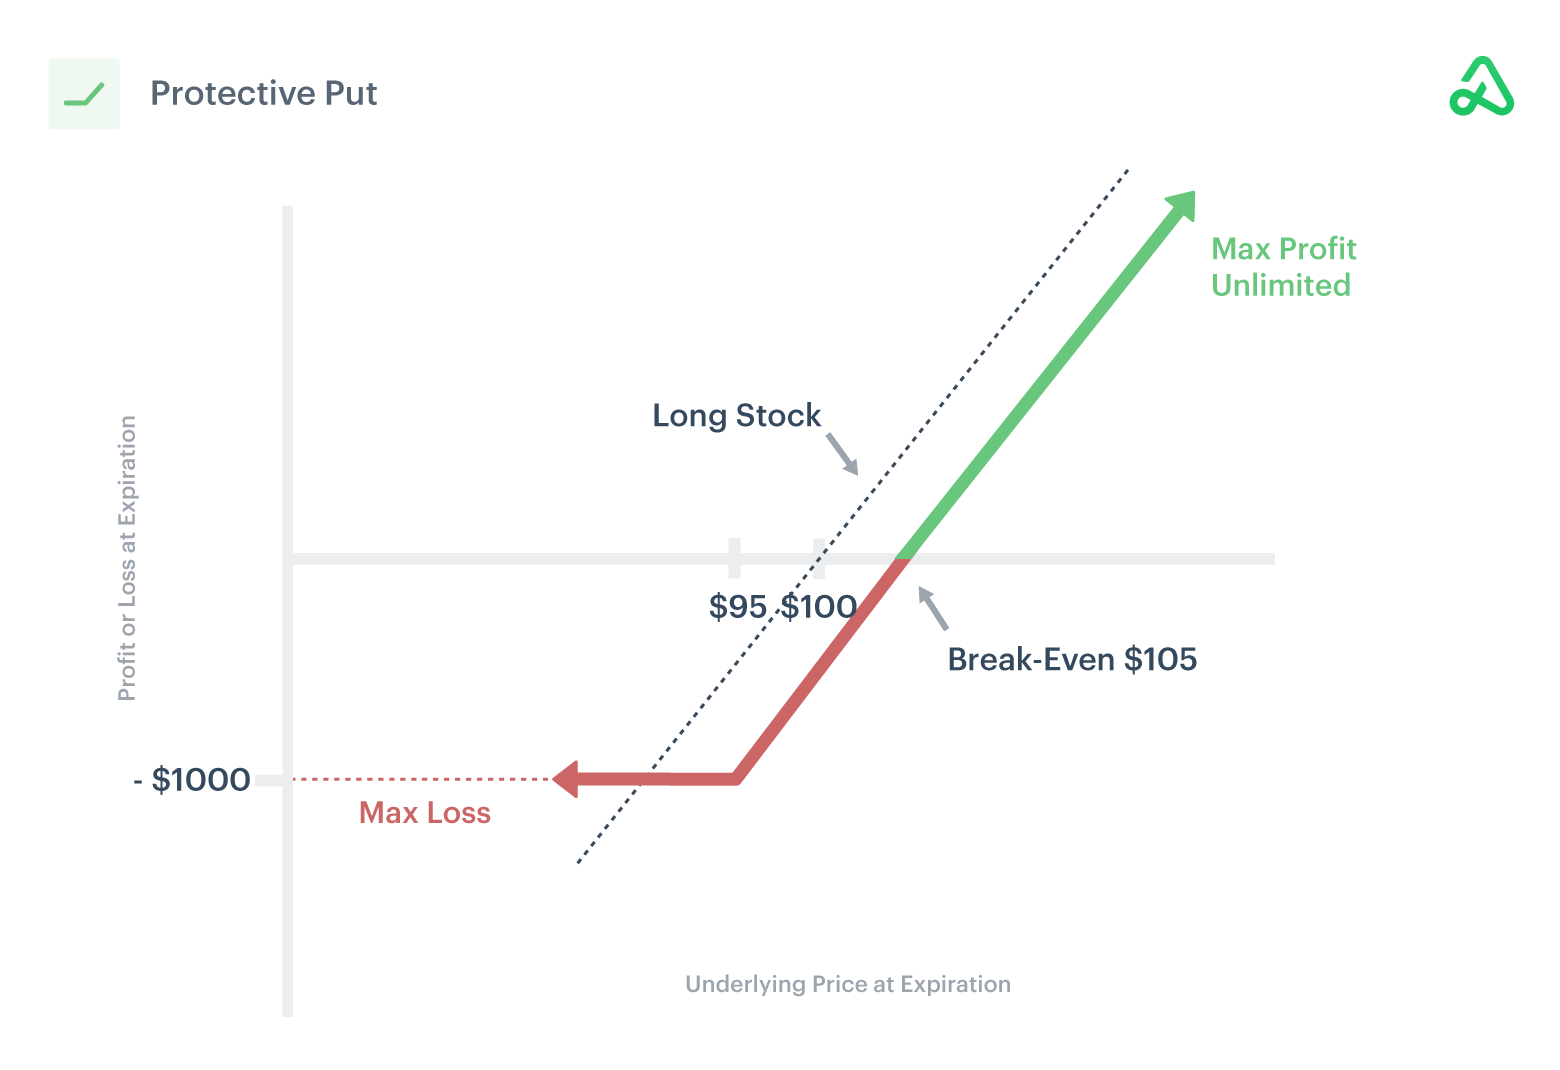 Image of a protective put payoff diagram showing max profit, max loss, and break-even points